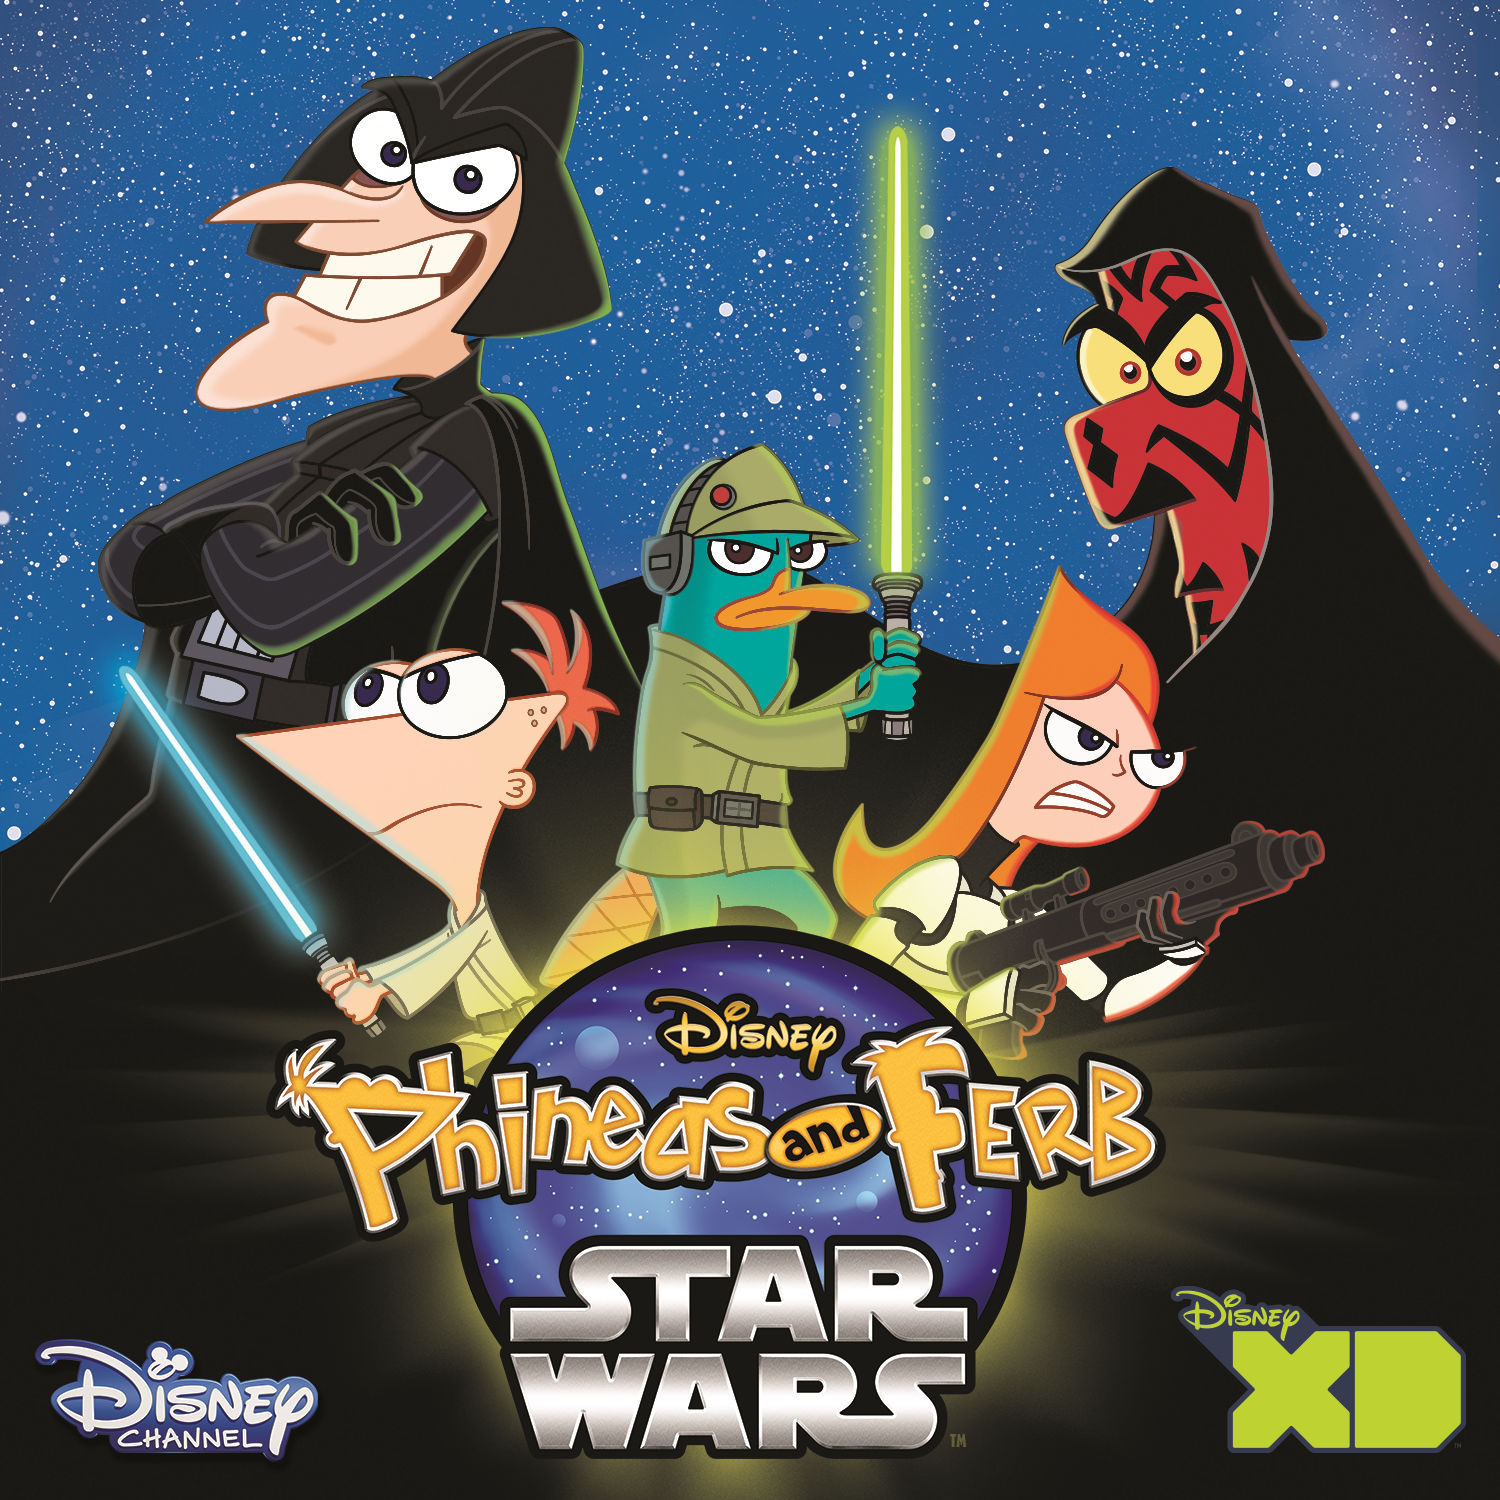 Phineas and Ferb Star Wars (Music from the TV Series) - EP